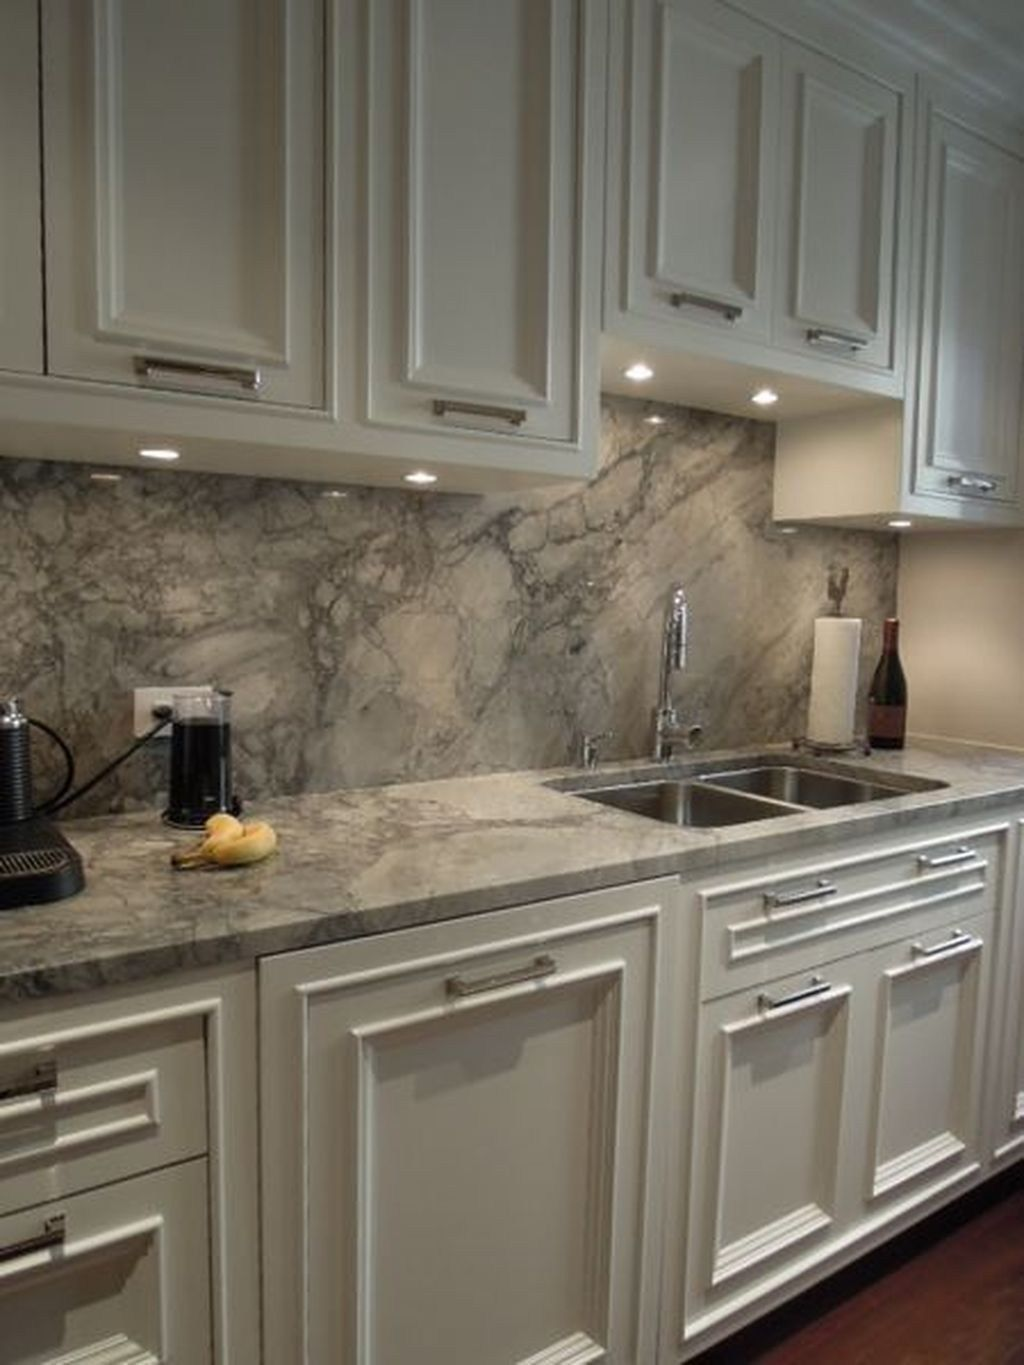 48 Stunning Quartz Backsplash Kitchen Ideas Quartz Kitchen